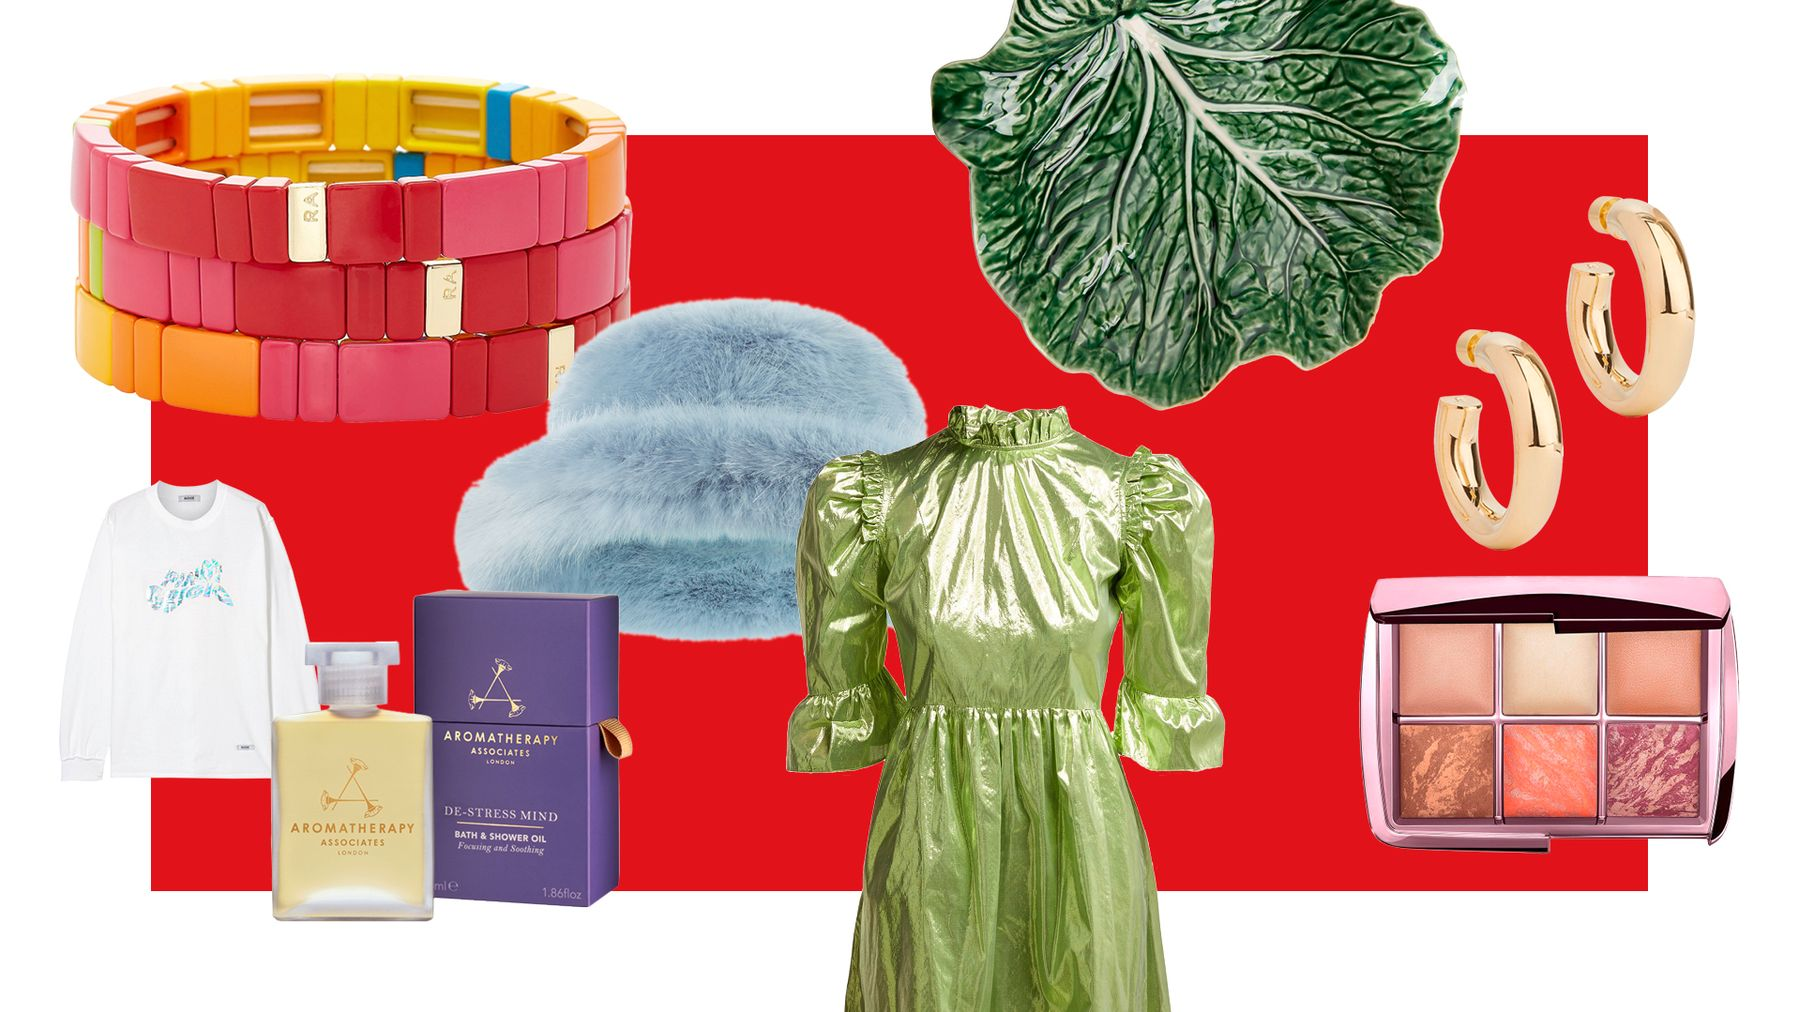 Things To Ask For Christmas.Christmas Gift List What To Ask For Grazia